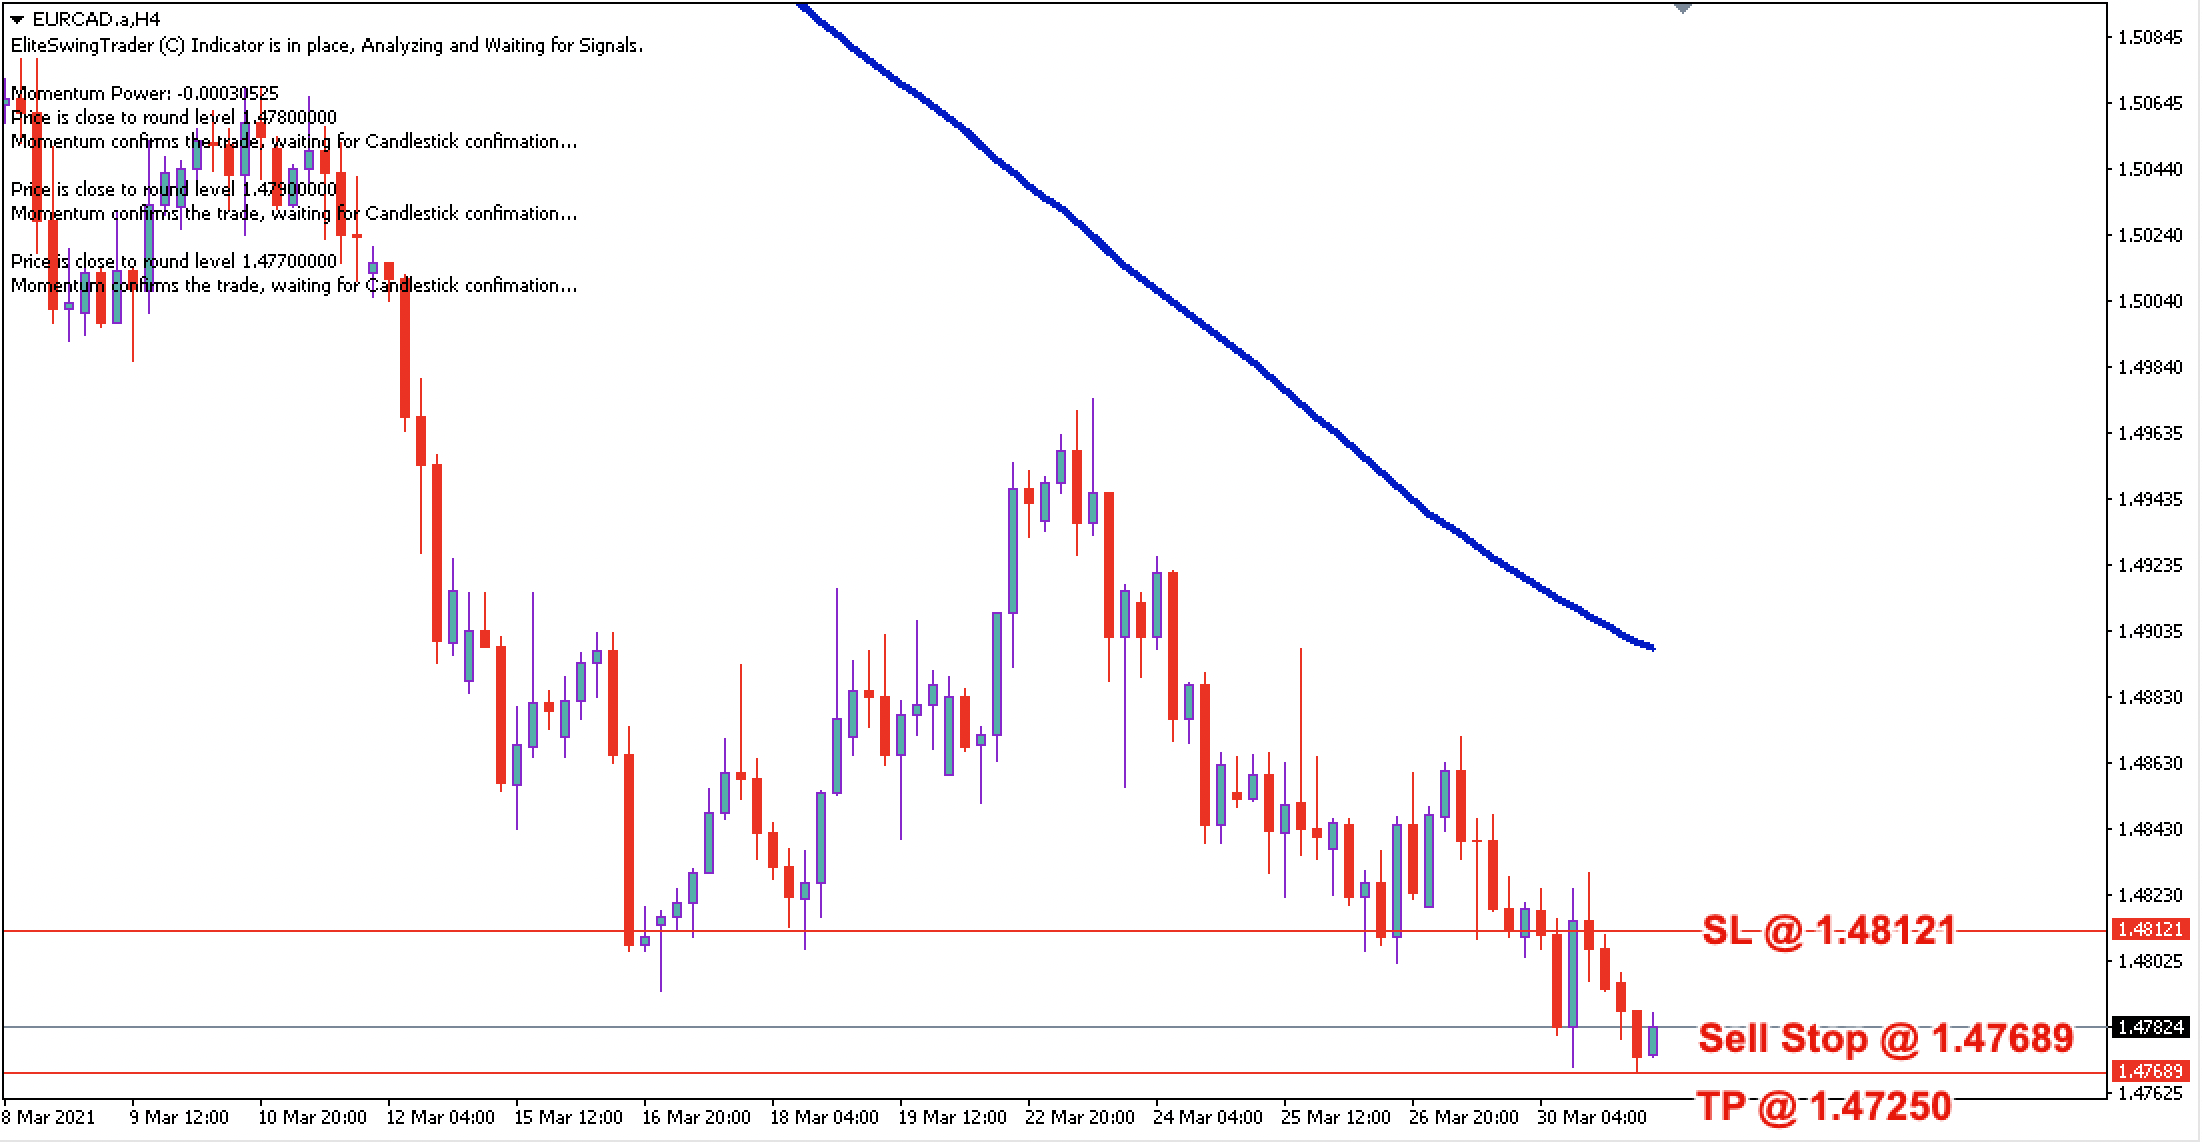 EUR/CAD Daily Price Forecast - 31st March 2021